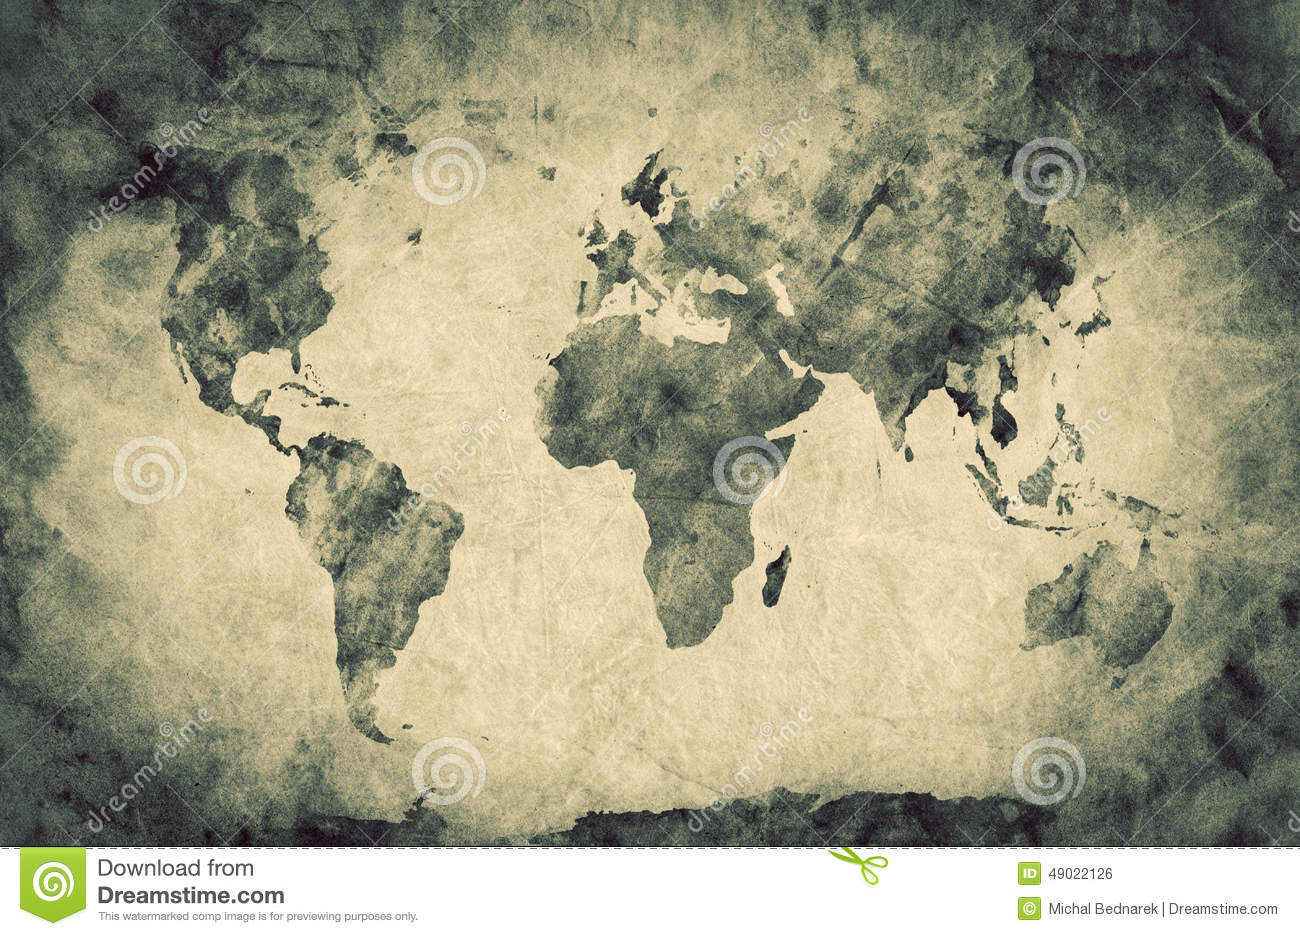 World map sketch stock vector illustration of continents 43560811 ancient old world map pencil sketch grunge vintage royalty free stock image gumiabroncs Gallery